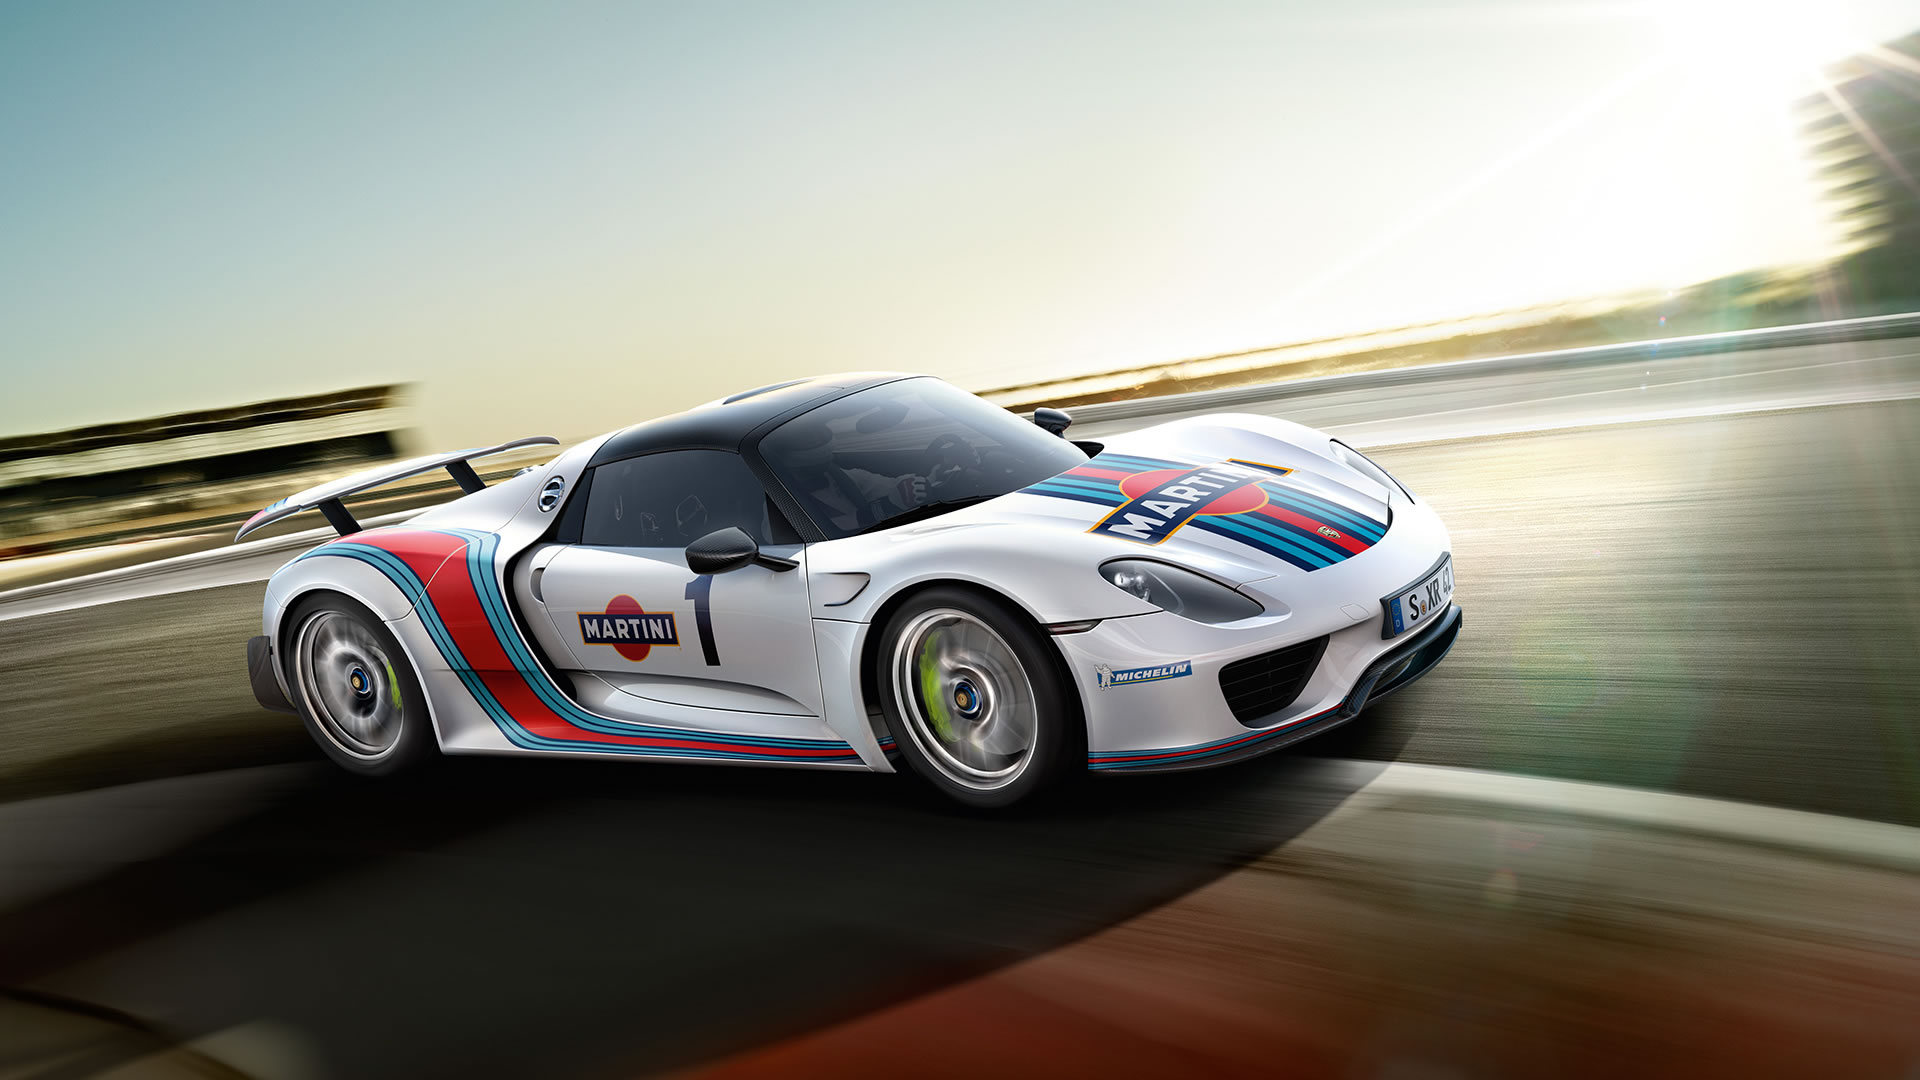 2015 porsche 918 spyder weissach martini racing wallpaper 1920 x 1080 front three quarters. Black Bedroom Furniture Sets. Home Design Ideas